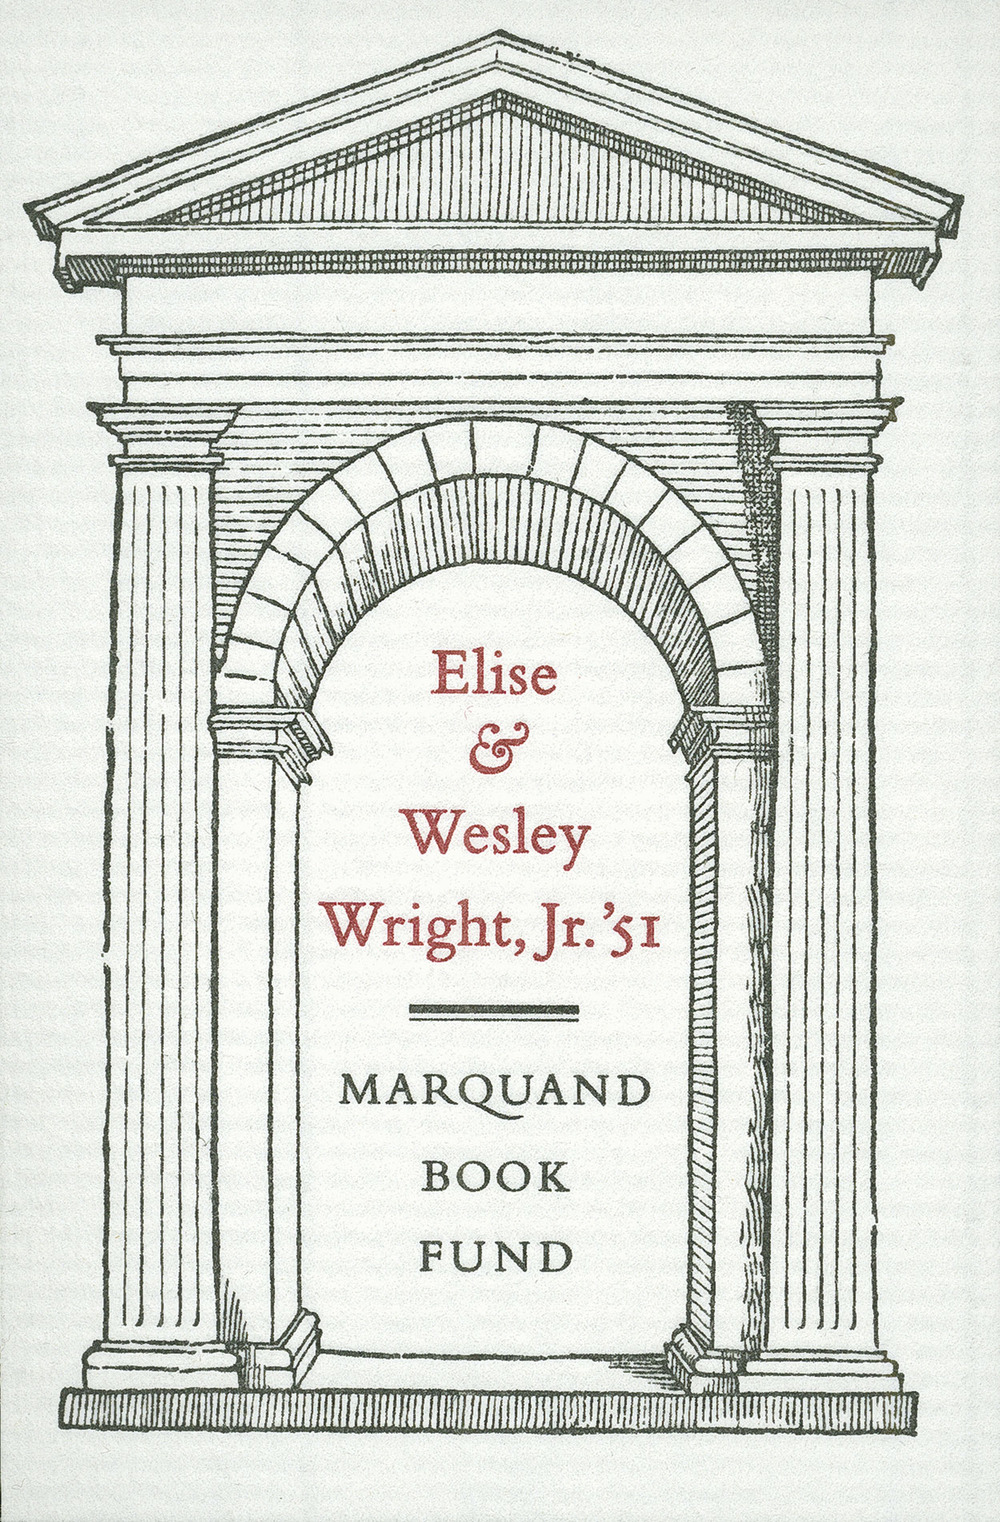 Marquand bookplate.jpg